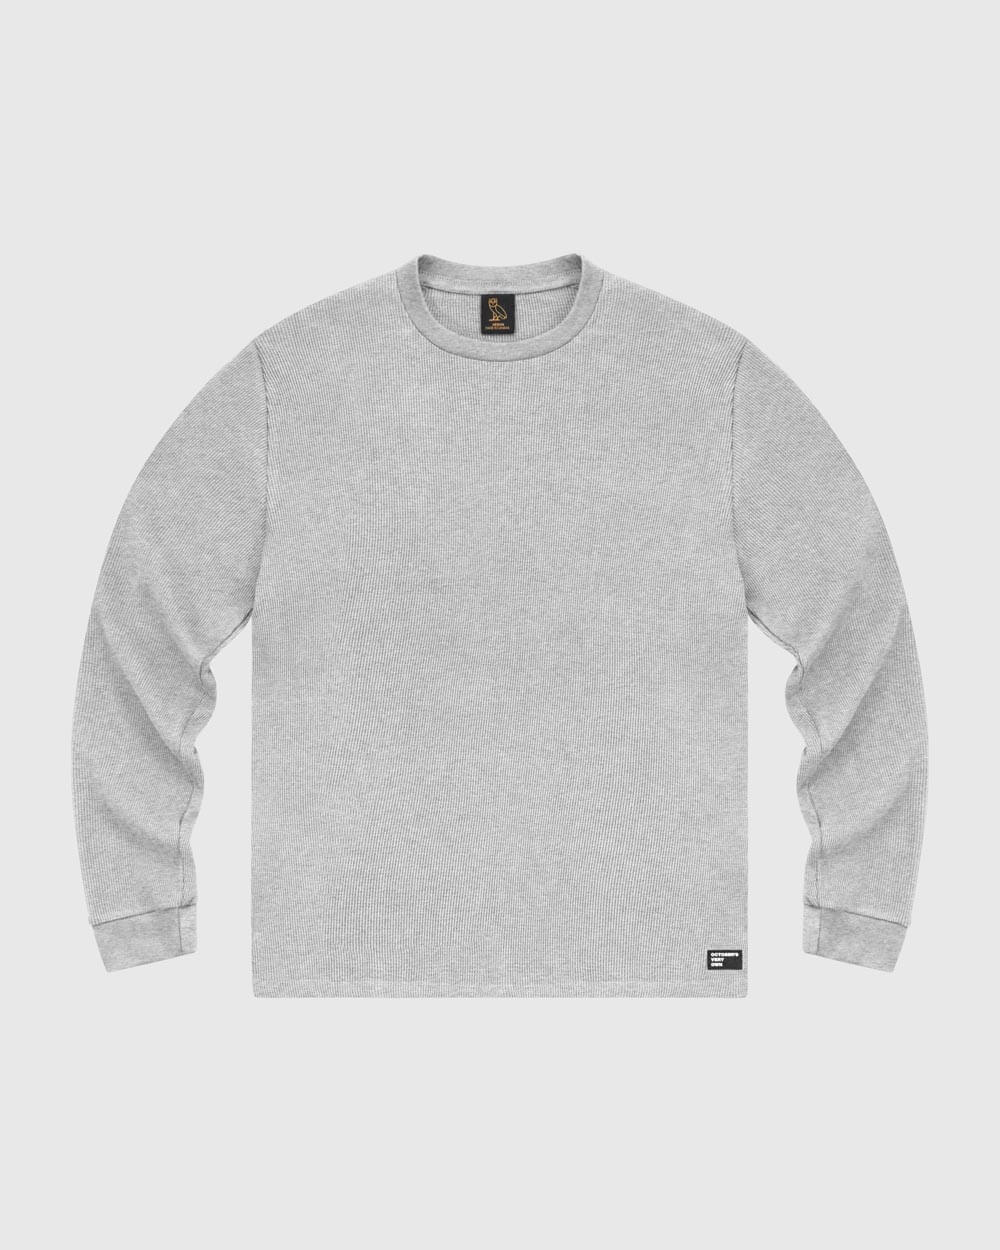 OVO THERMAL KNIT LONGSLEEVE - HEATHER GREY